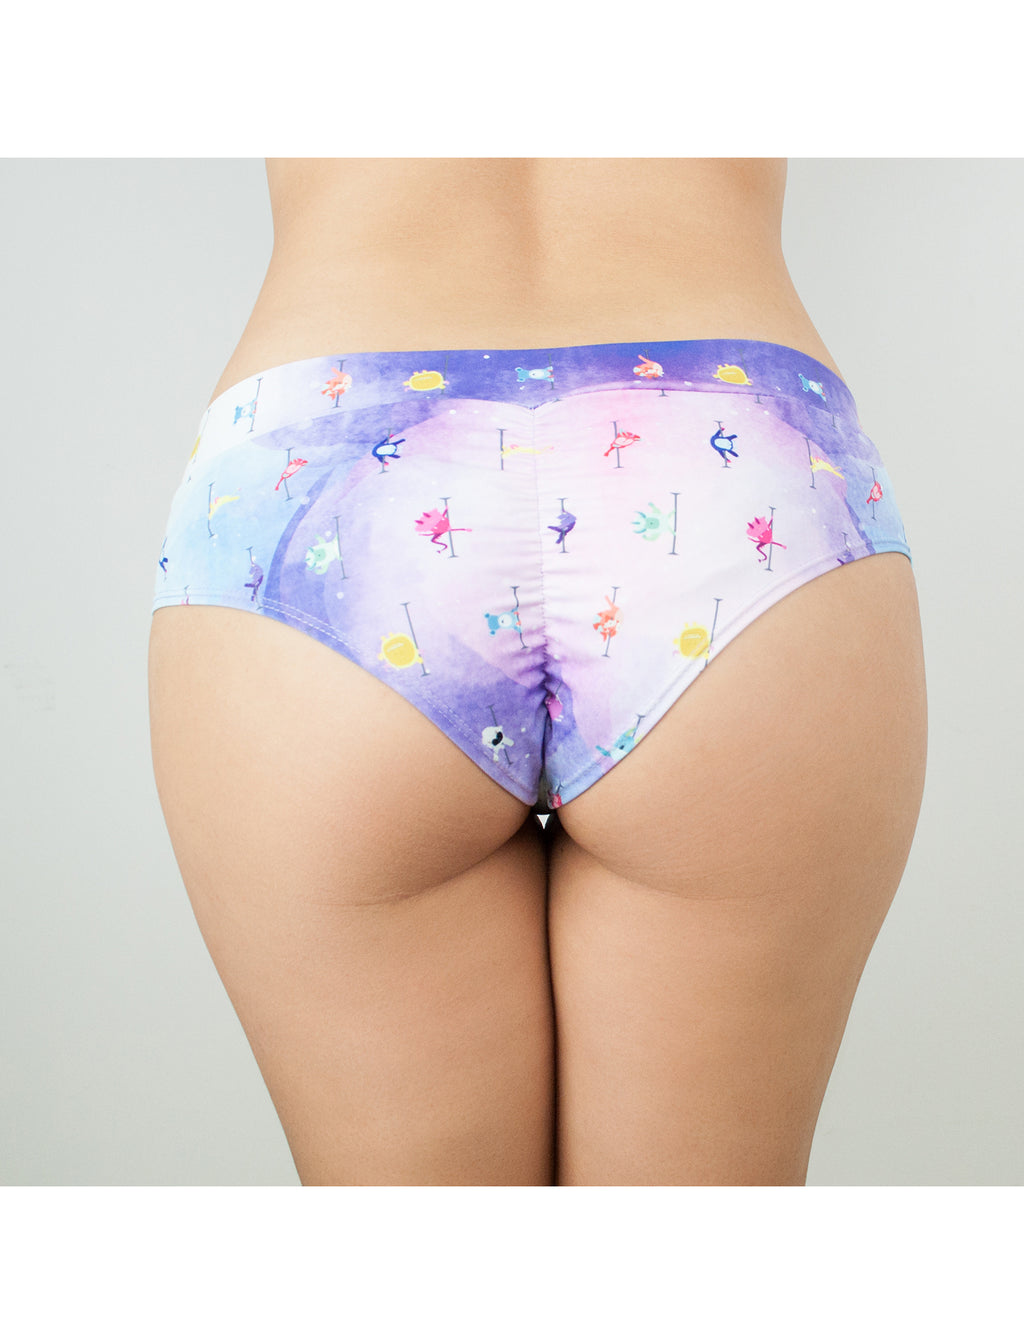 Beast Mode Pastel Swirl Cheeky Shorts